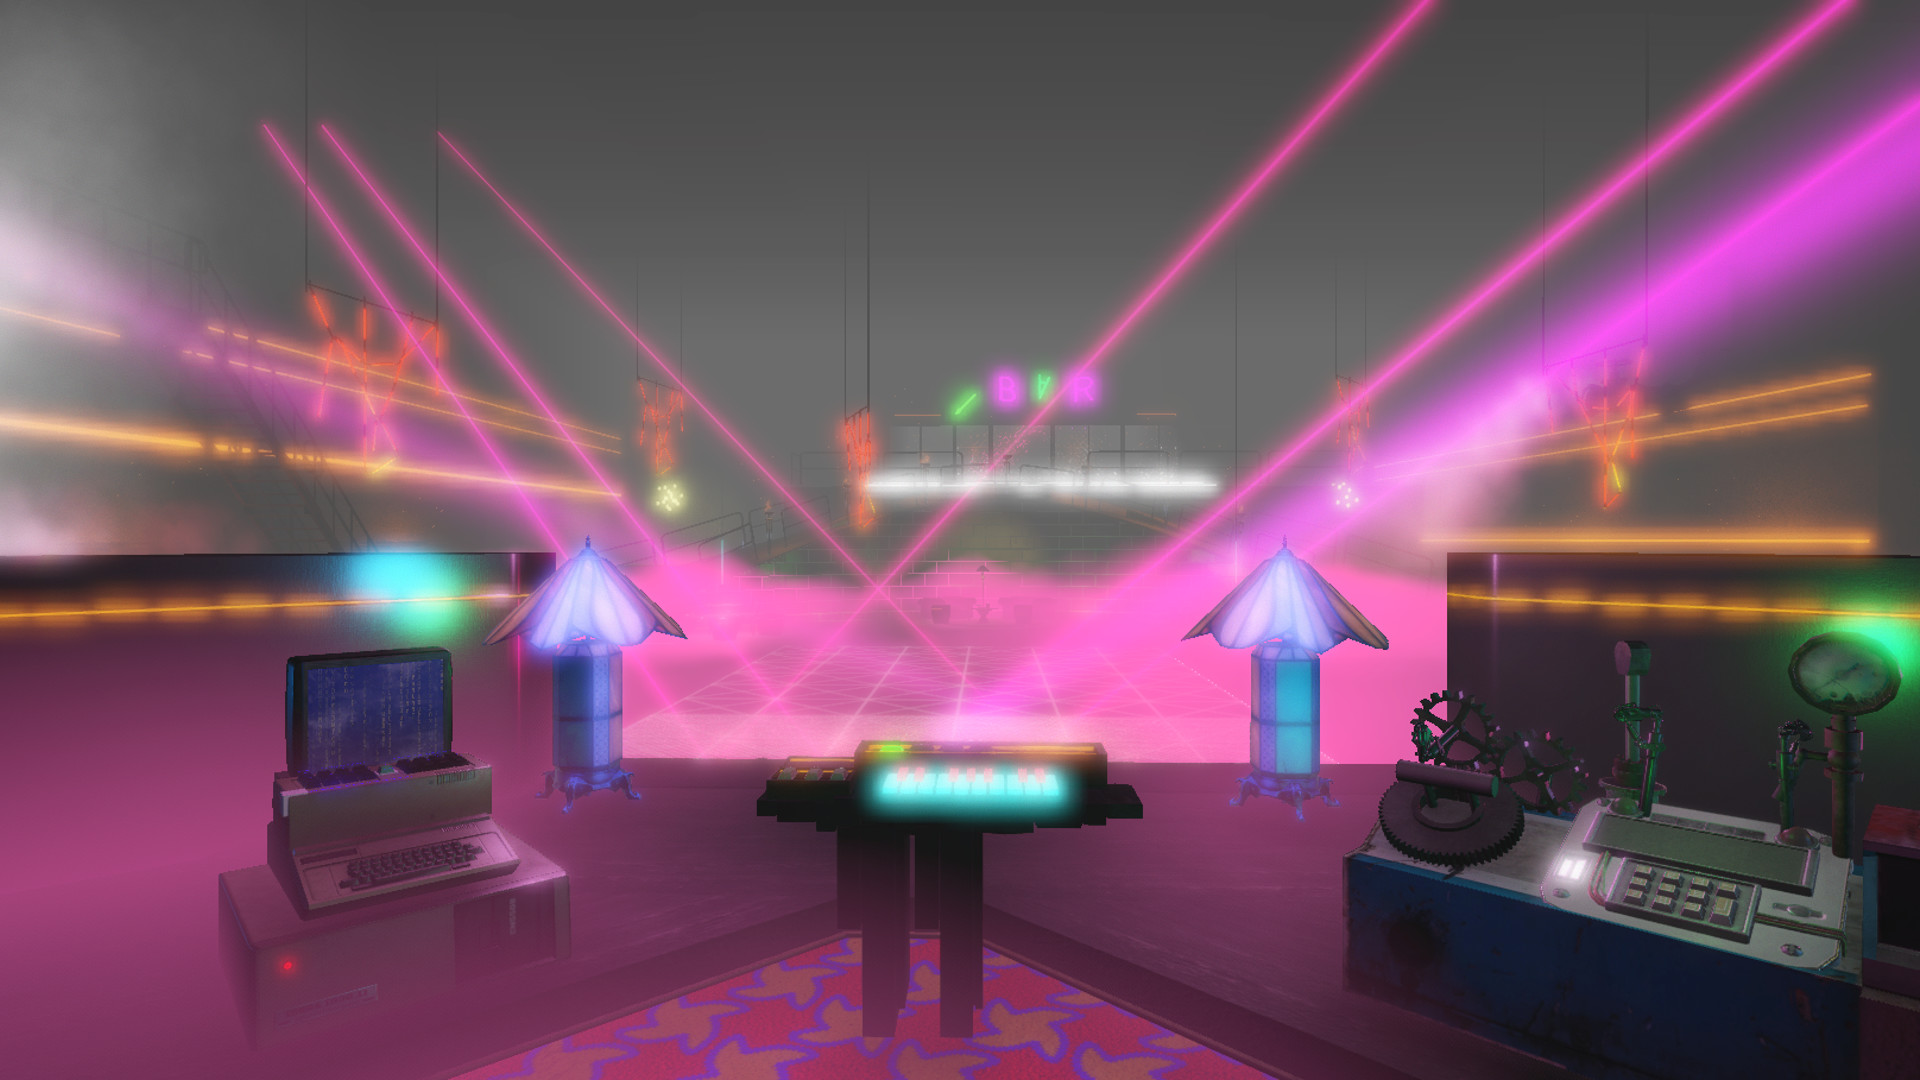 Isolationist Nightclub Simulator Is Launching On March 11th For PC Audiences